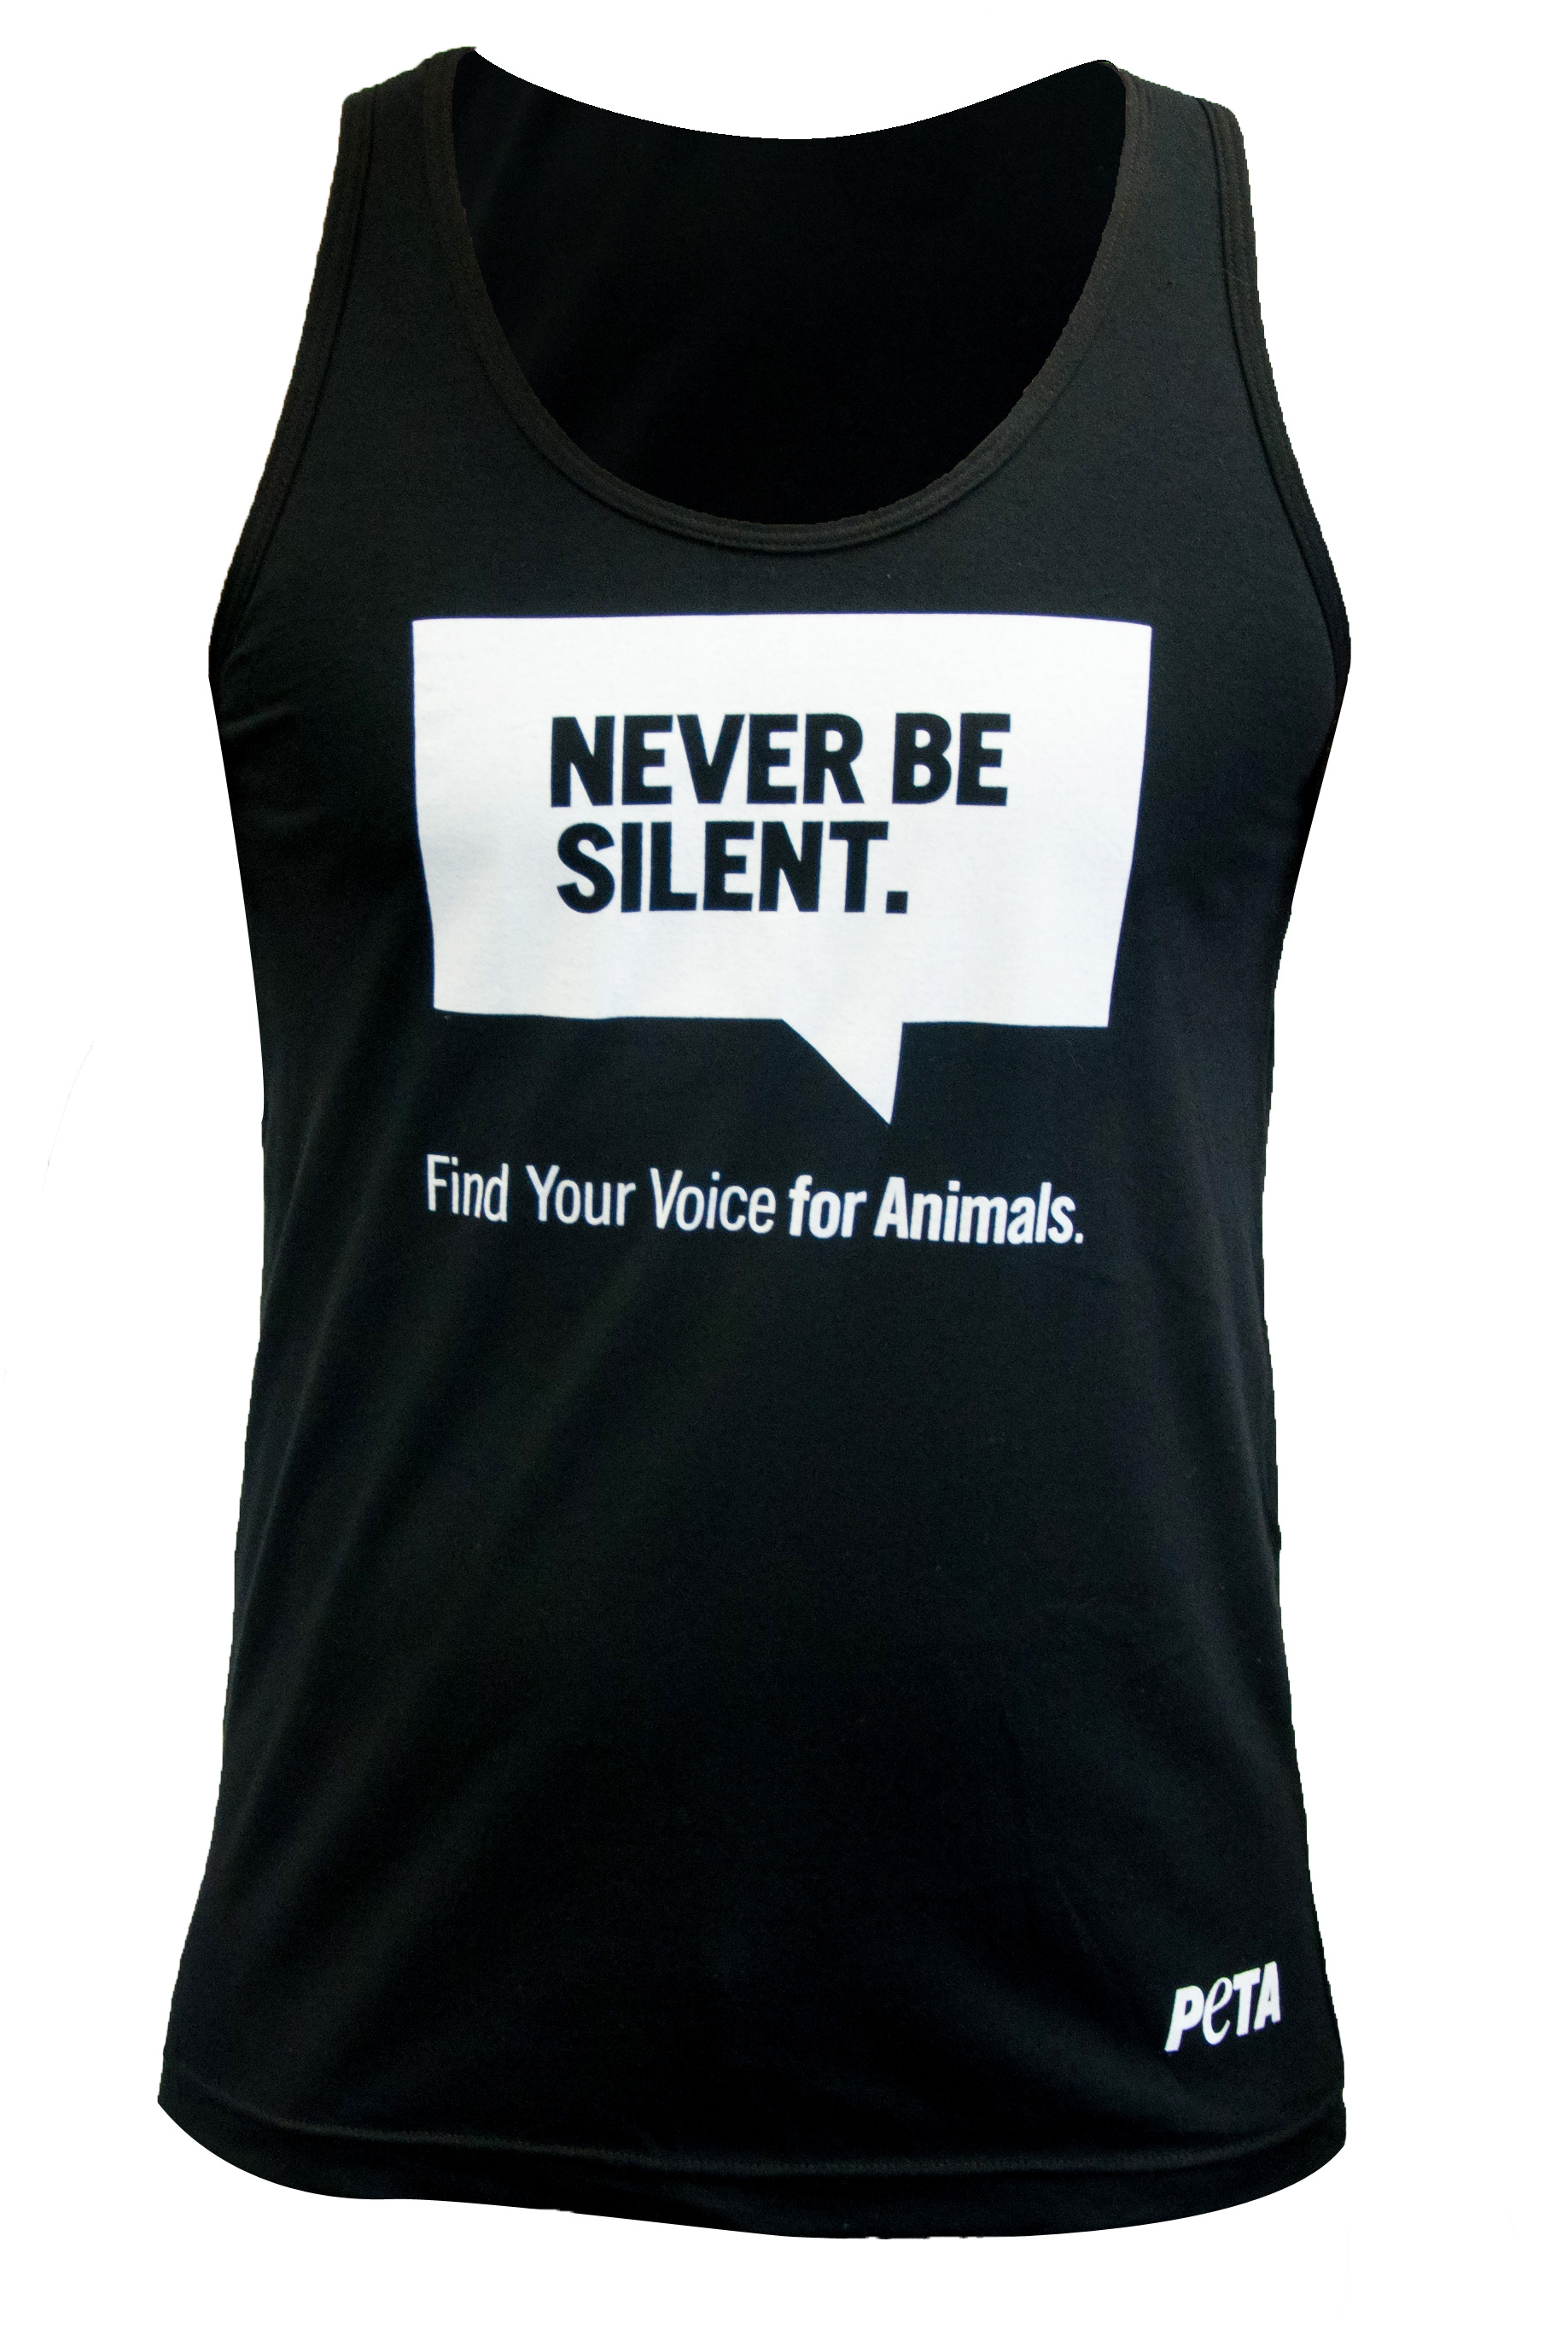 Never Be Silent Tank Top: PETA Catalog